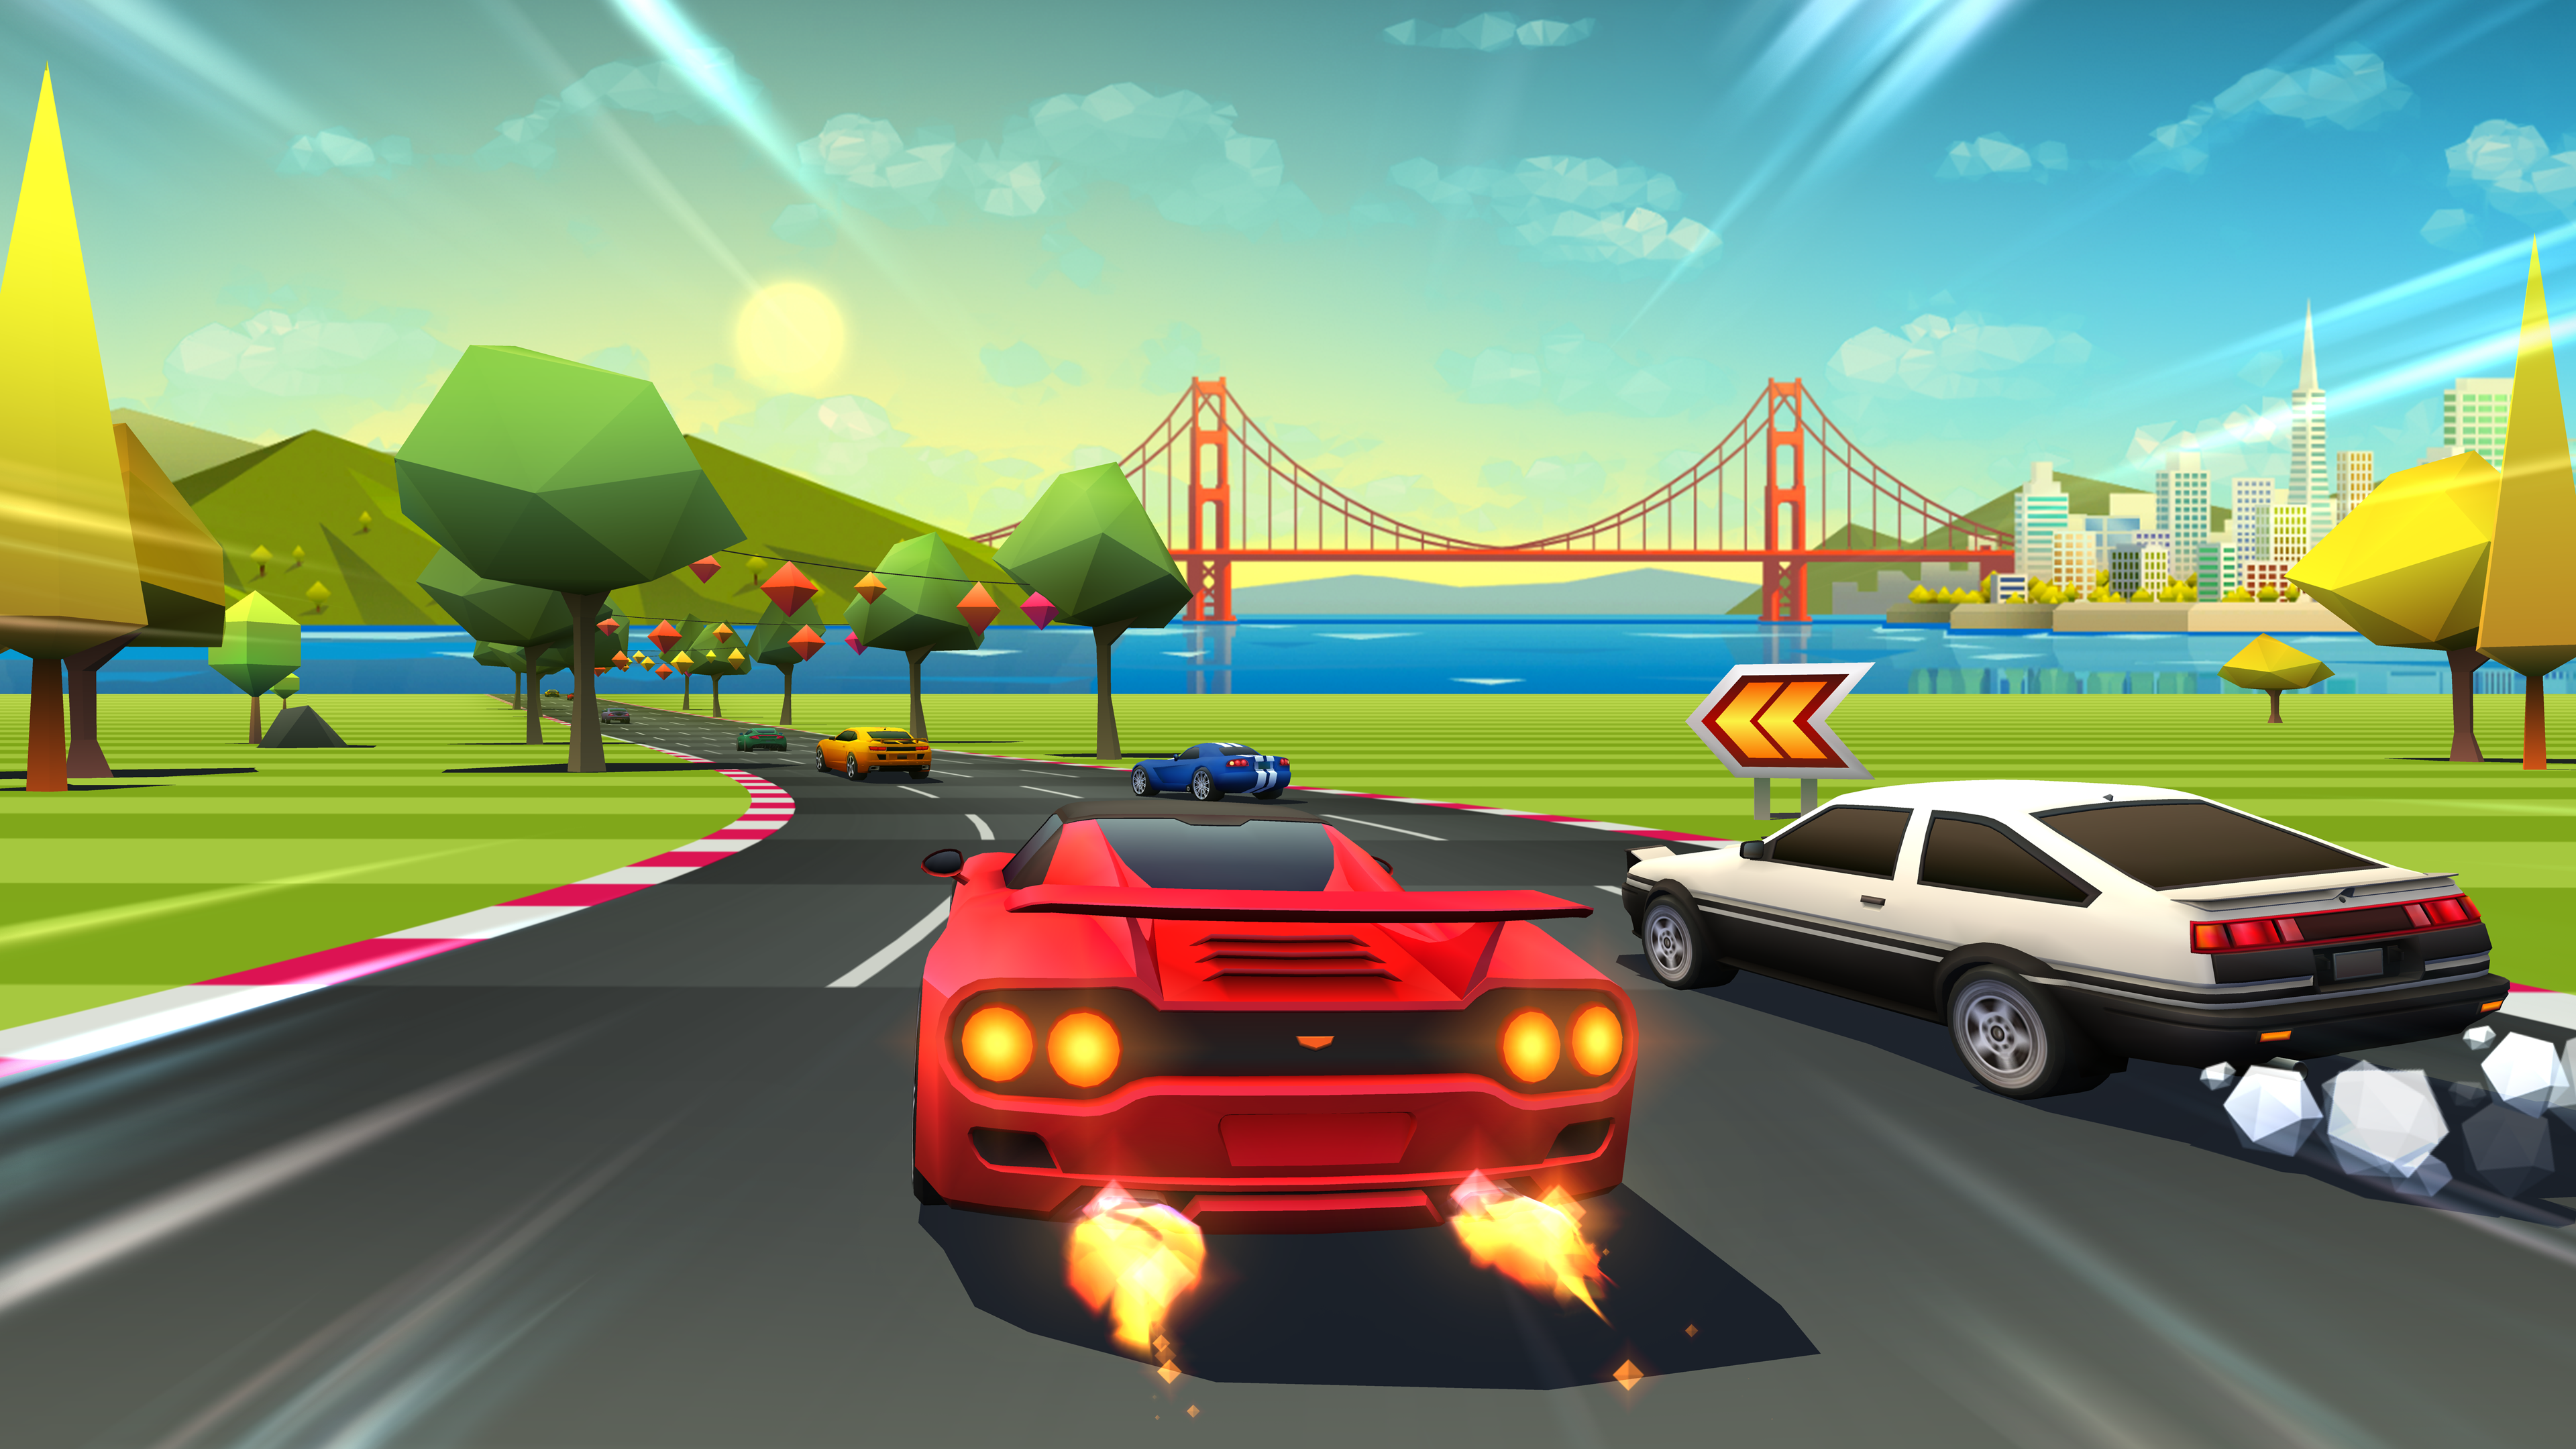 Horizon Chase Turbo gets playable demo on PS4 and Steam